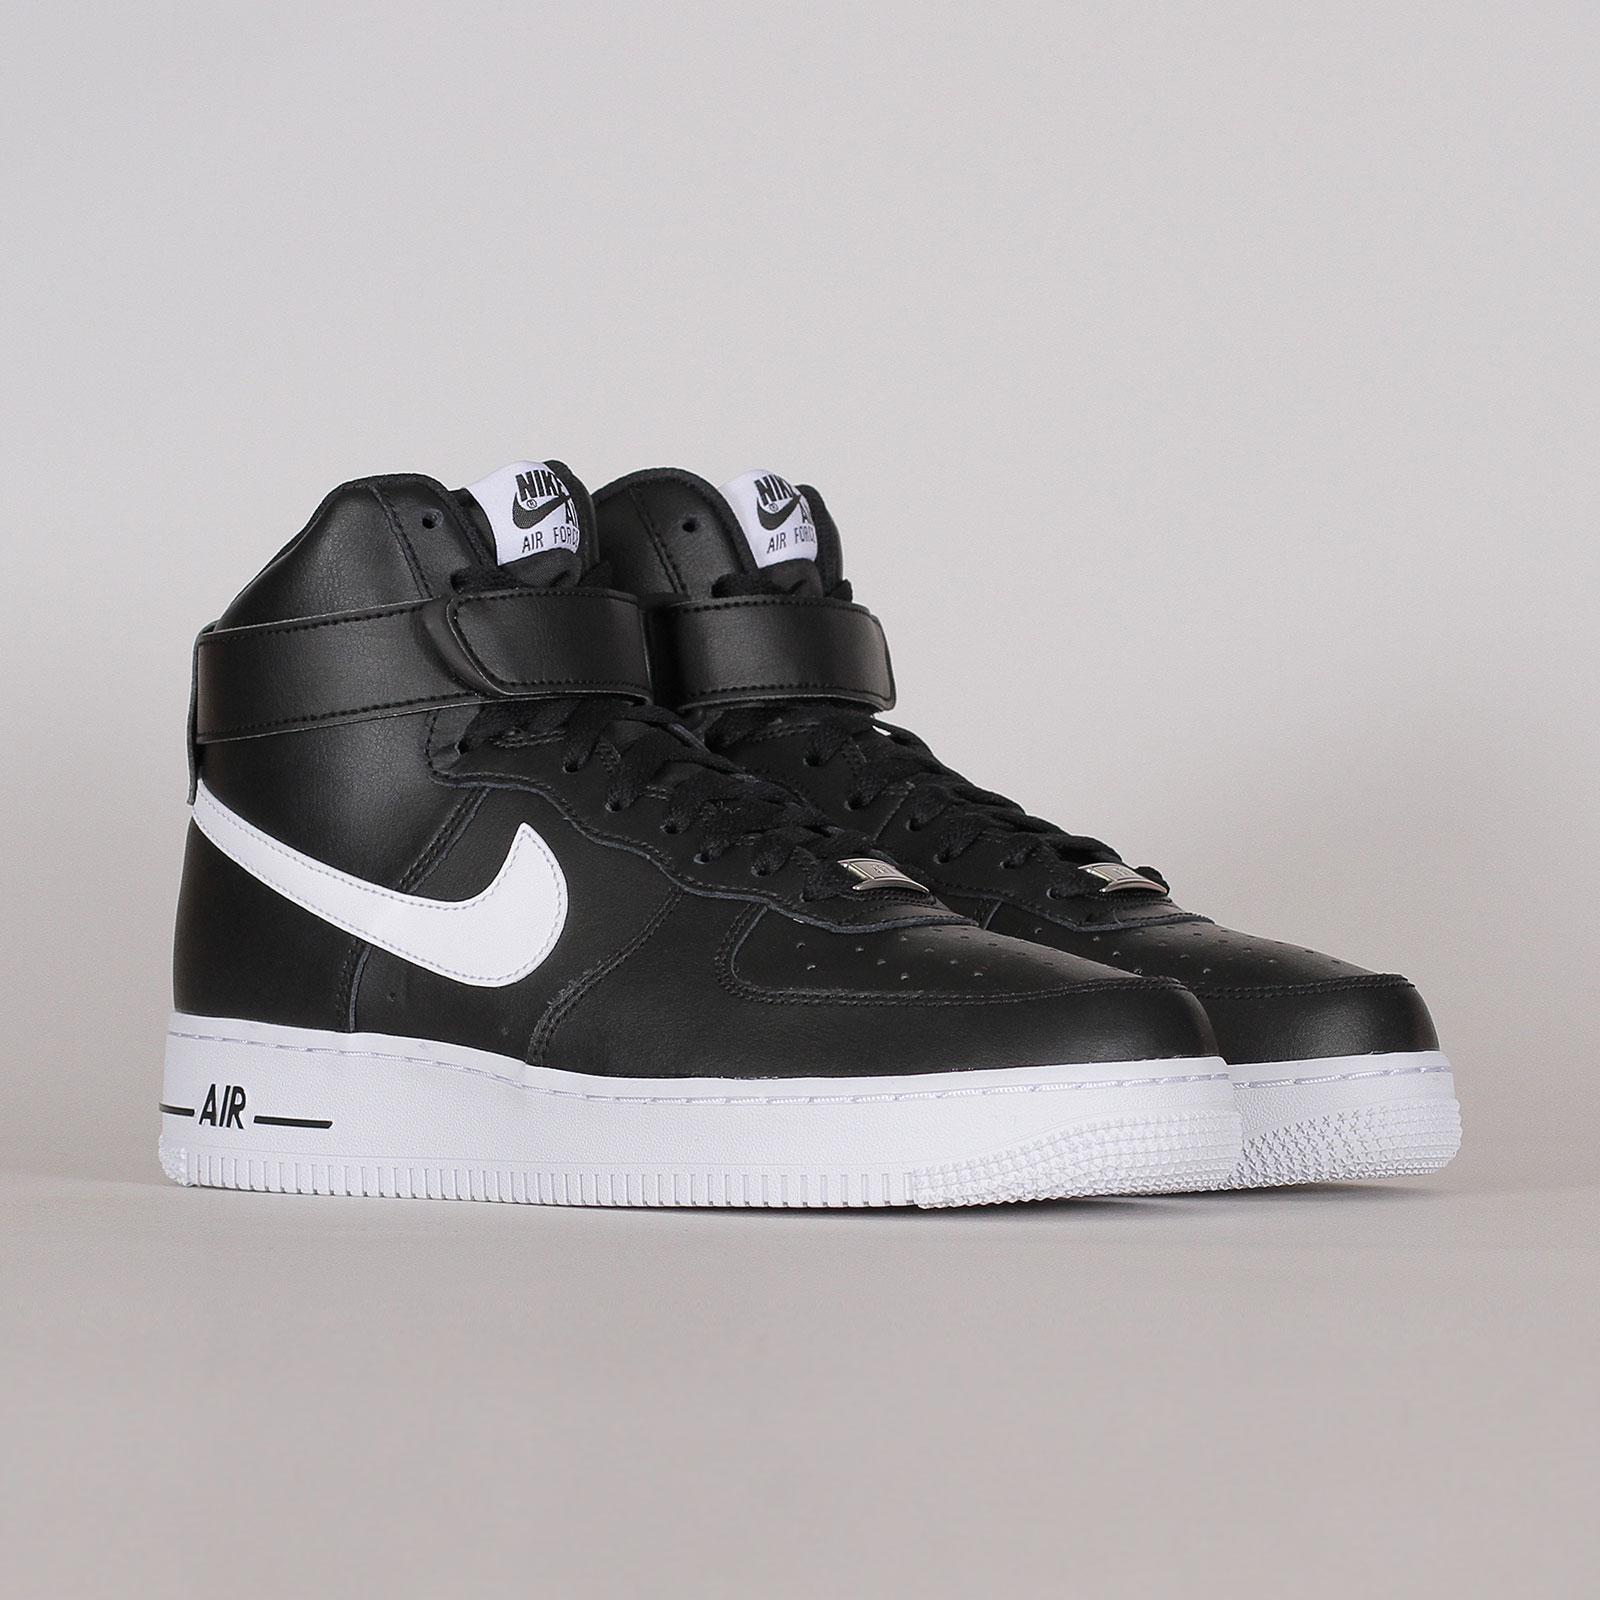 Nike Air Force 1 High 07 Black (CK4369 001)